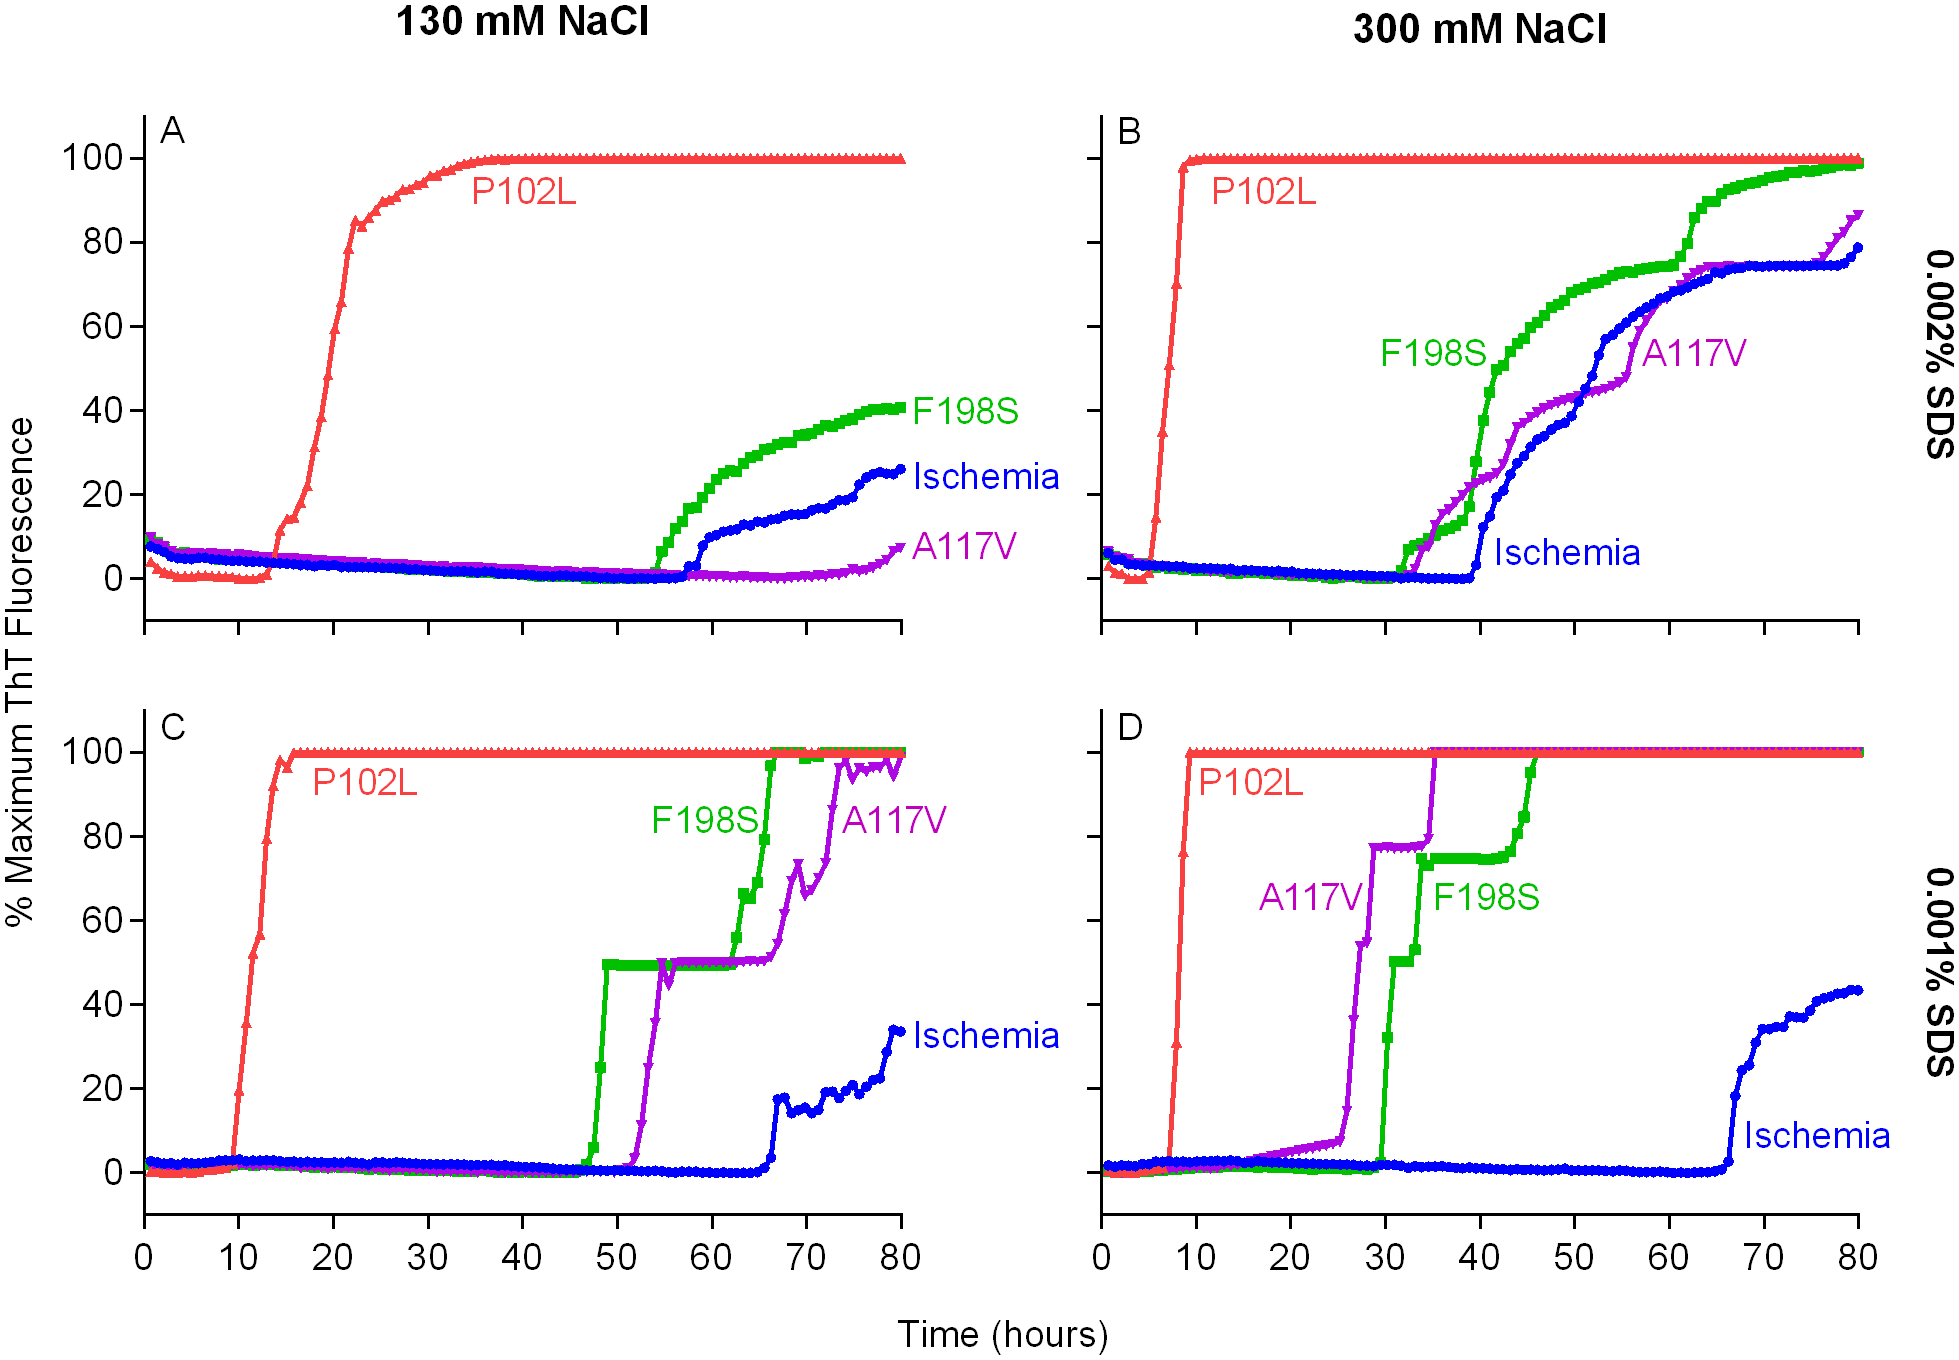 Detection of GSS P102L, F198S and A117V PrP<sup>D</sup> types by RT-QuIC using BV rPrP<sup>Sen</sup>, 300mM NaCl and 0.001% SDS.